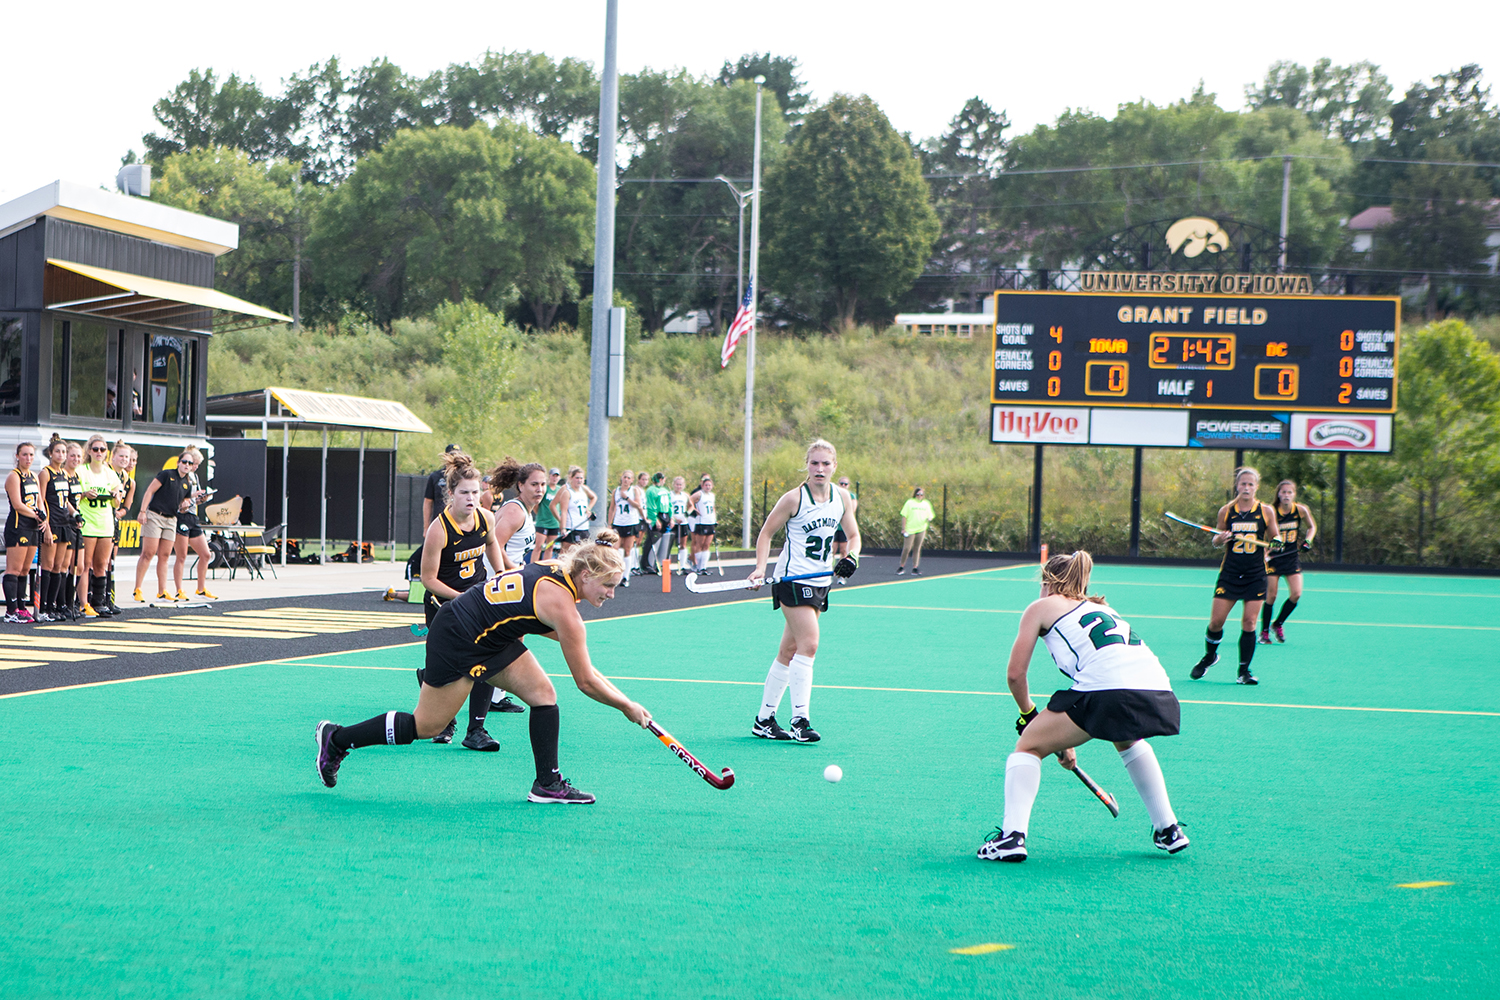 Iowa%27s+Ryley+Miller+passes+the+ball+during+a+field+hockey+match+between+Iowa+and+Dartmouth+College+at+Grant+Field+on+Friday%2C+August+31%2C+2018.+The+Hawkeyes+shut+out+the+Big+Green%2C+6-0.